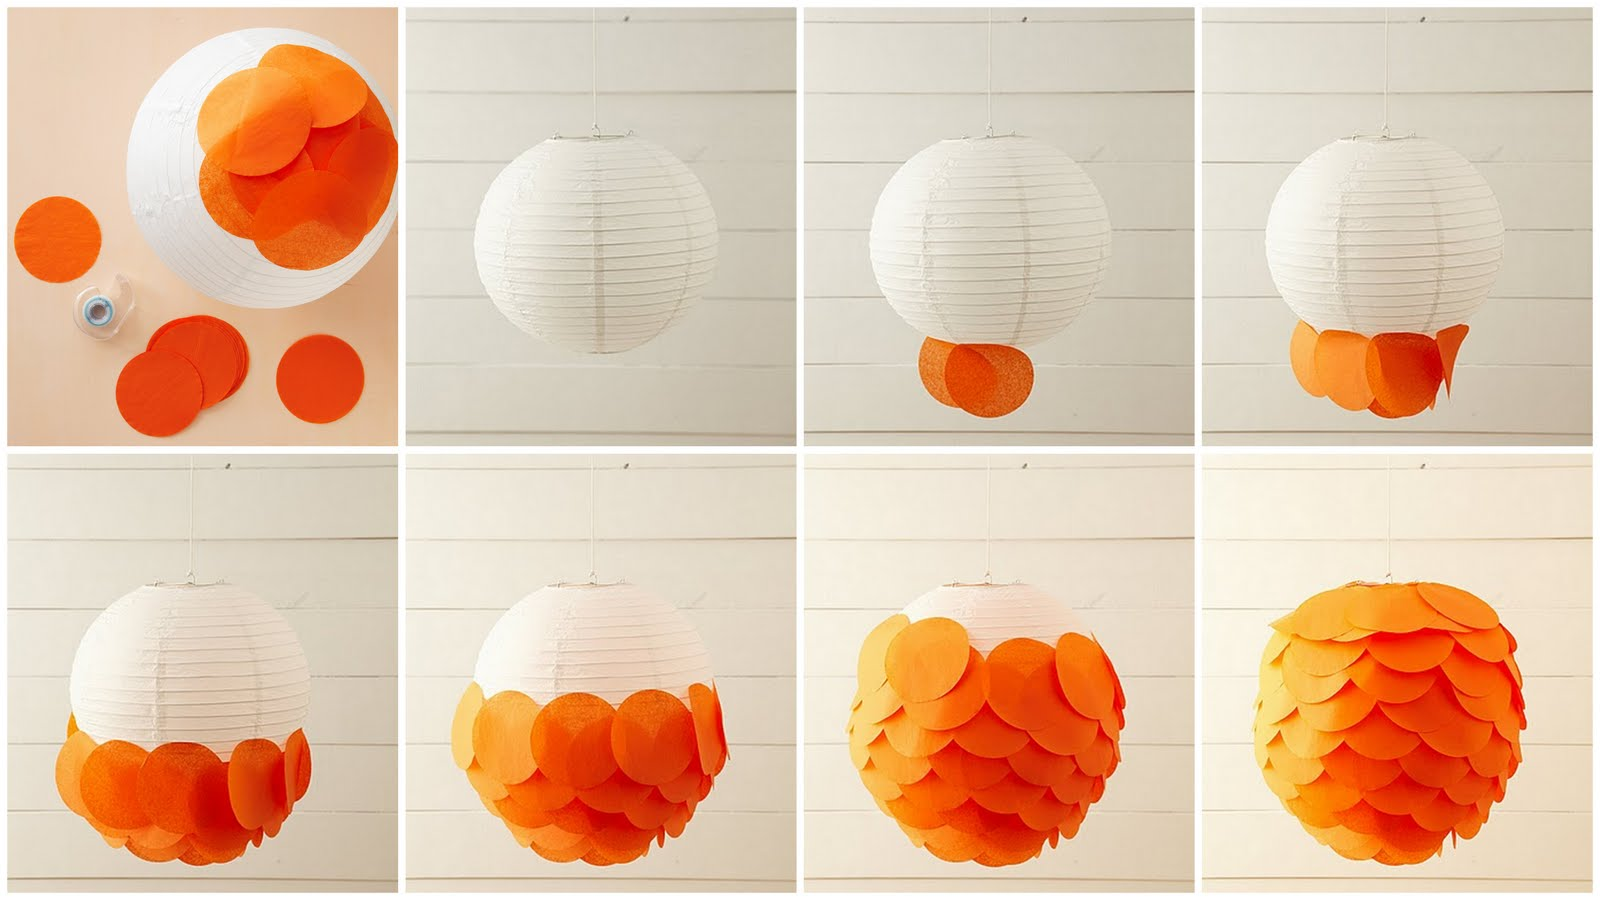 30. Use a paper lantern and add some colorful paper circles for a layered lamp